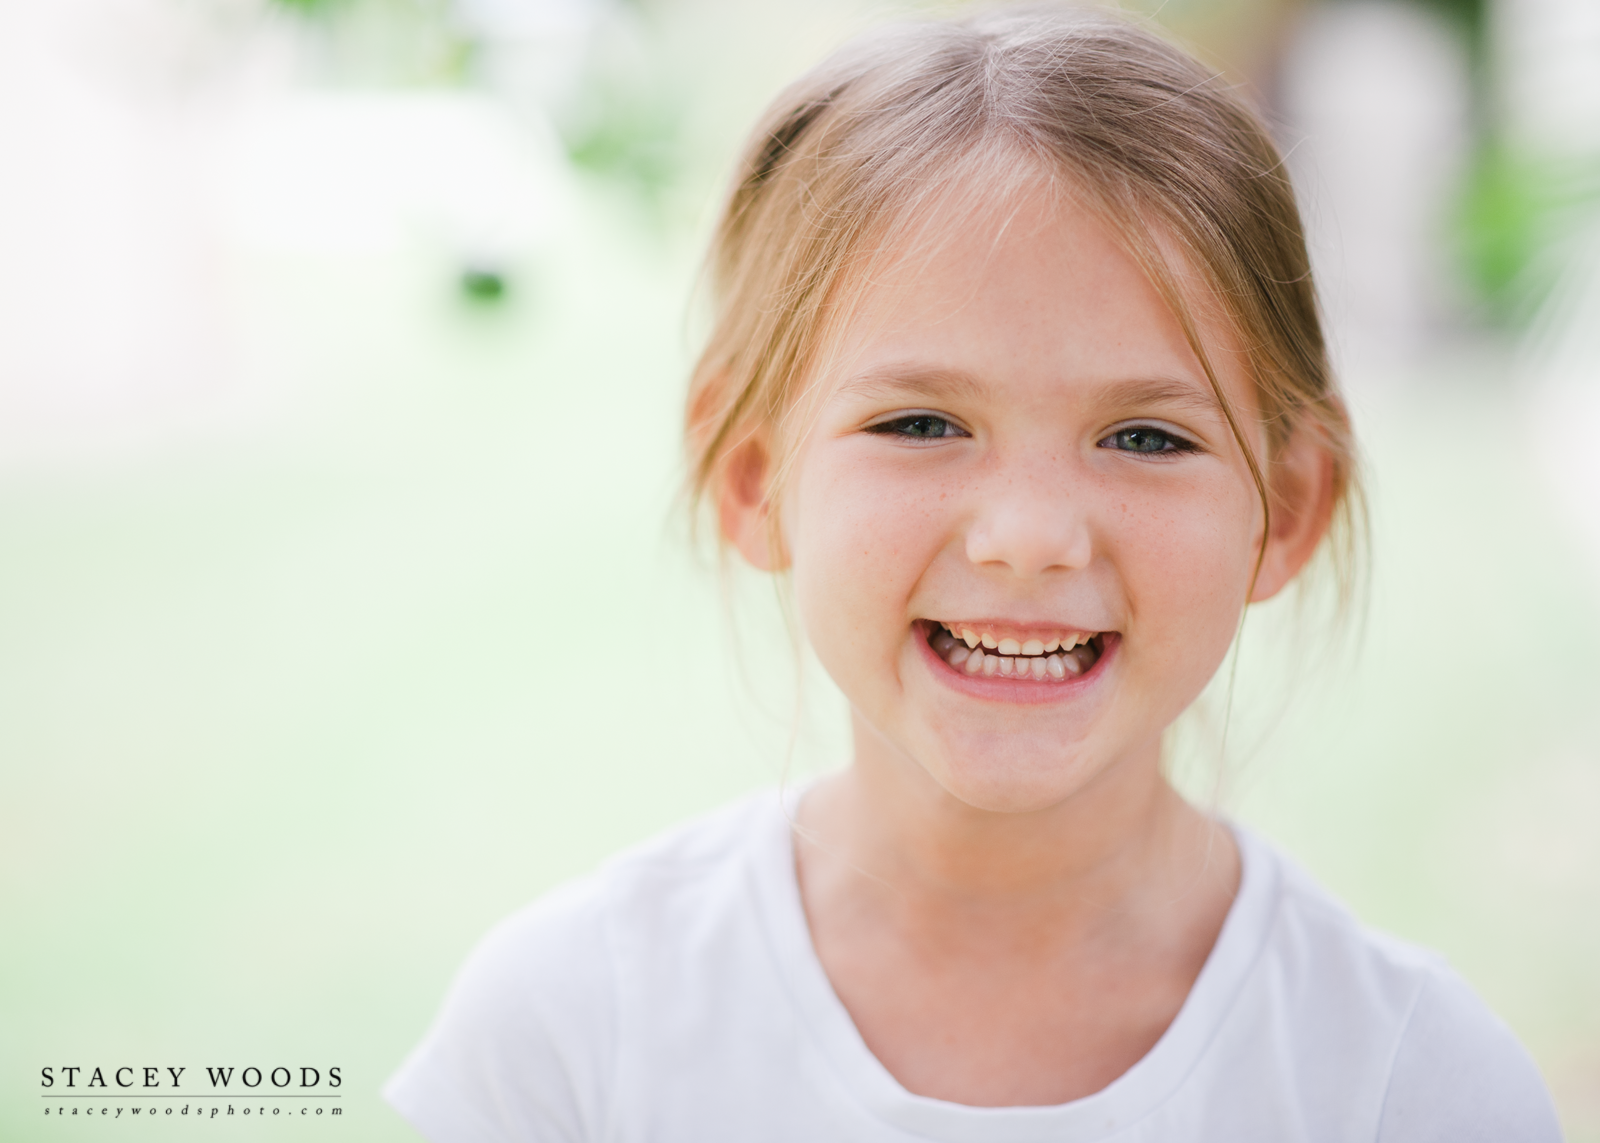 Stacey Woods, Tampa Bay family photographer